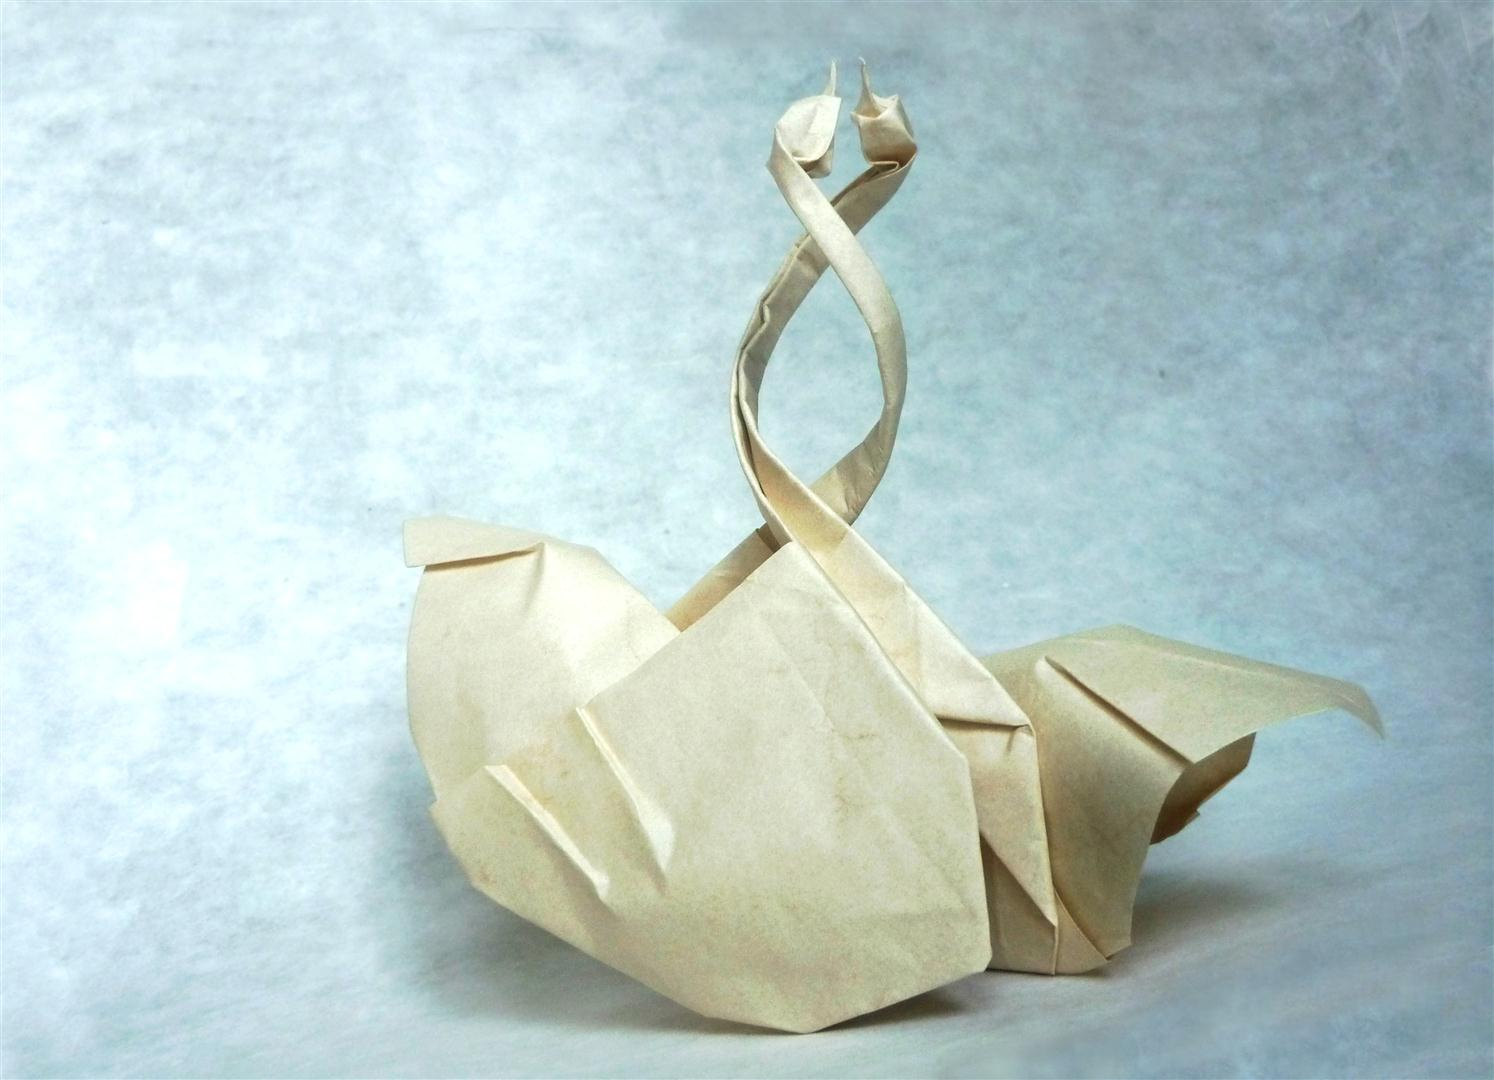 Entangled Swans - Origami by mitanei on DeviantArt - photo#20